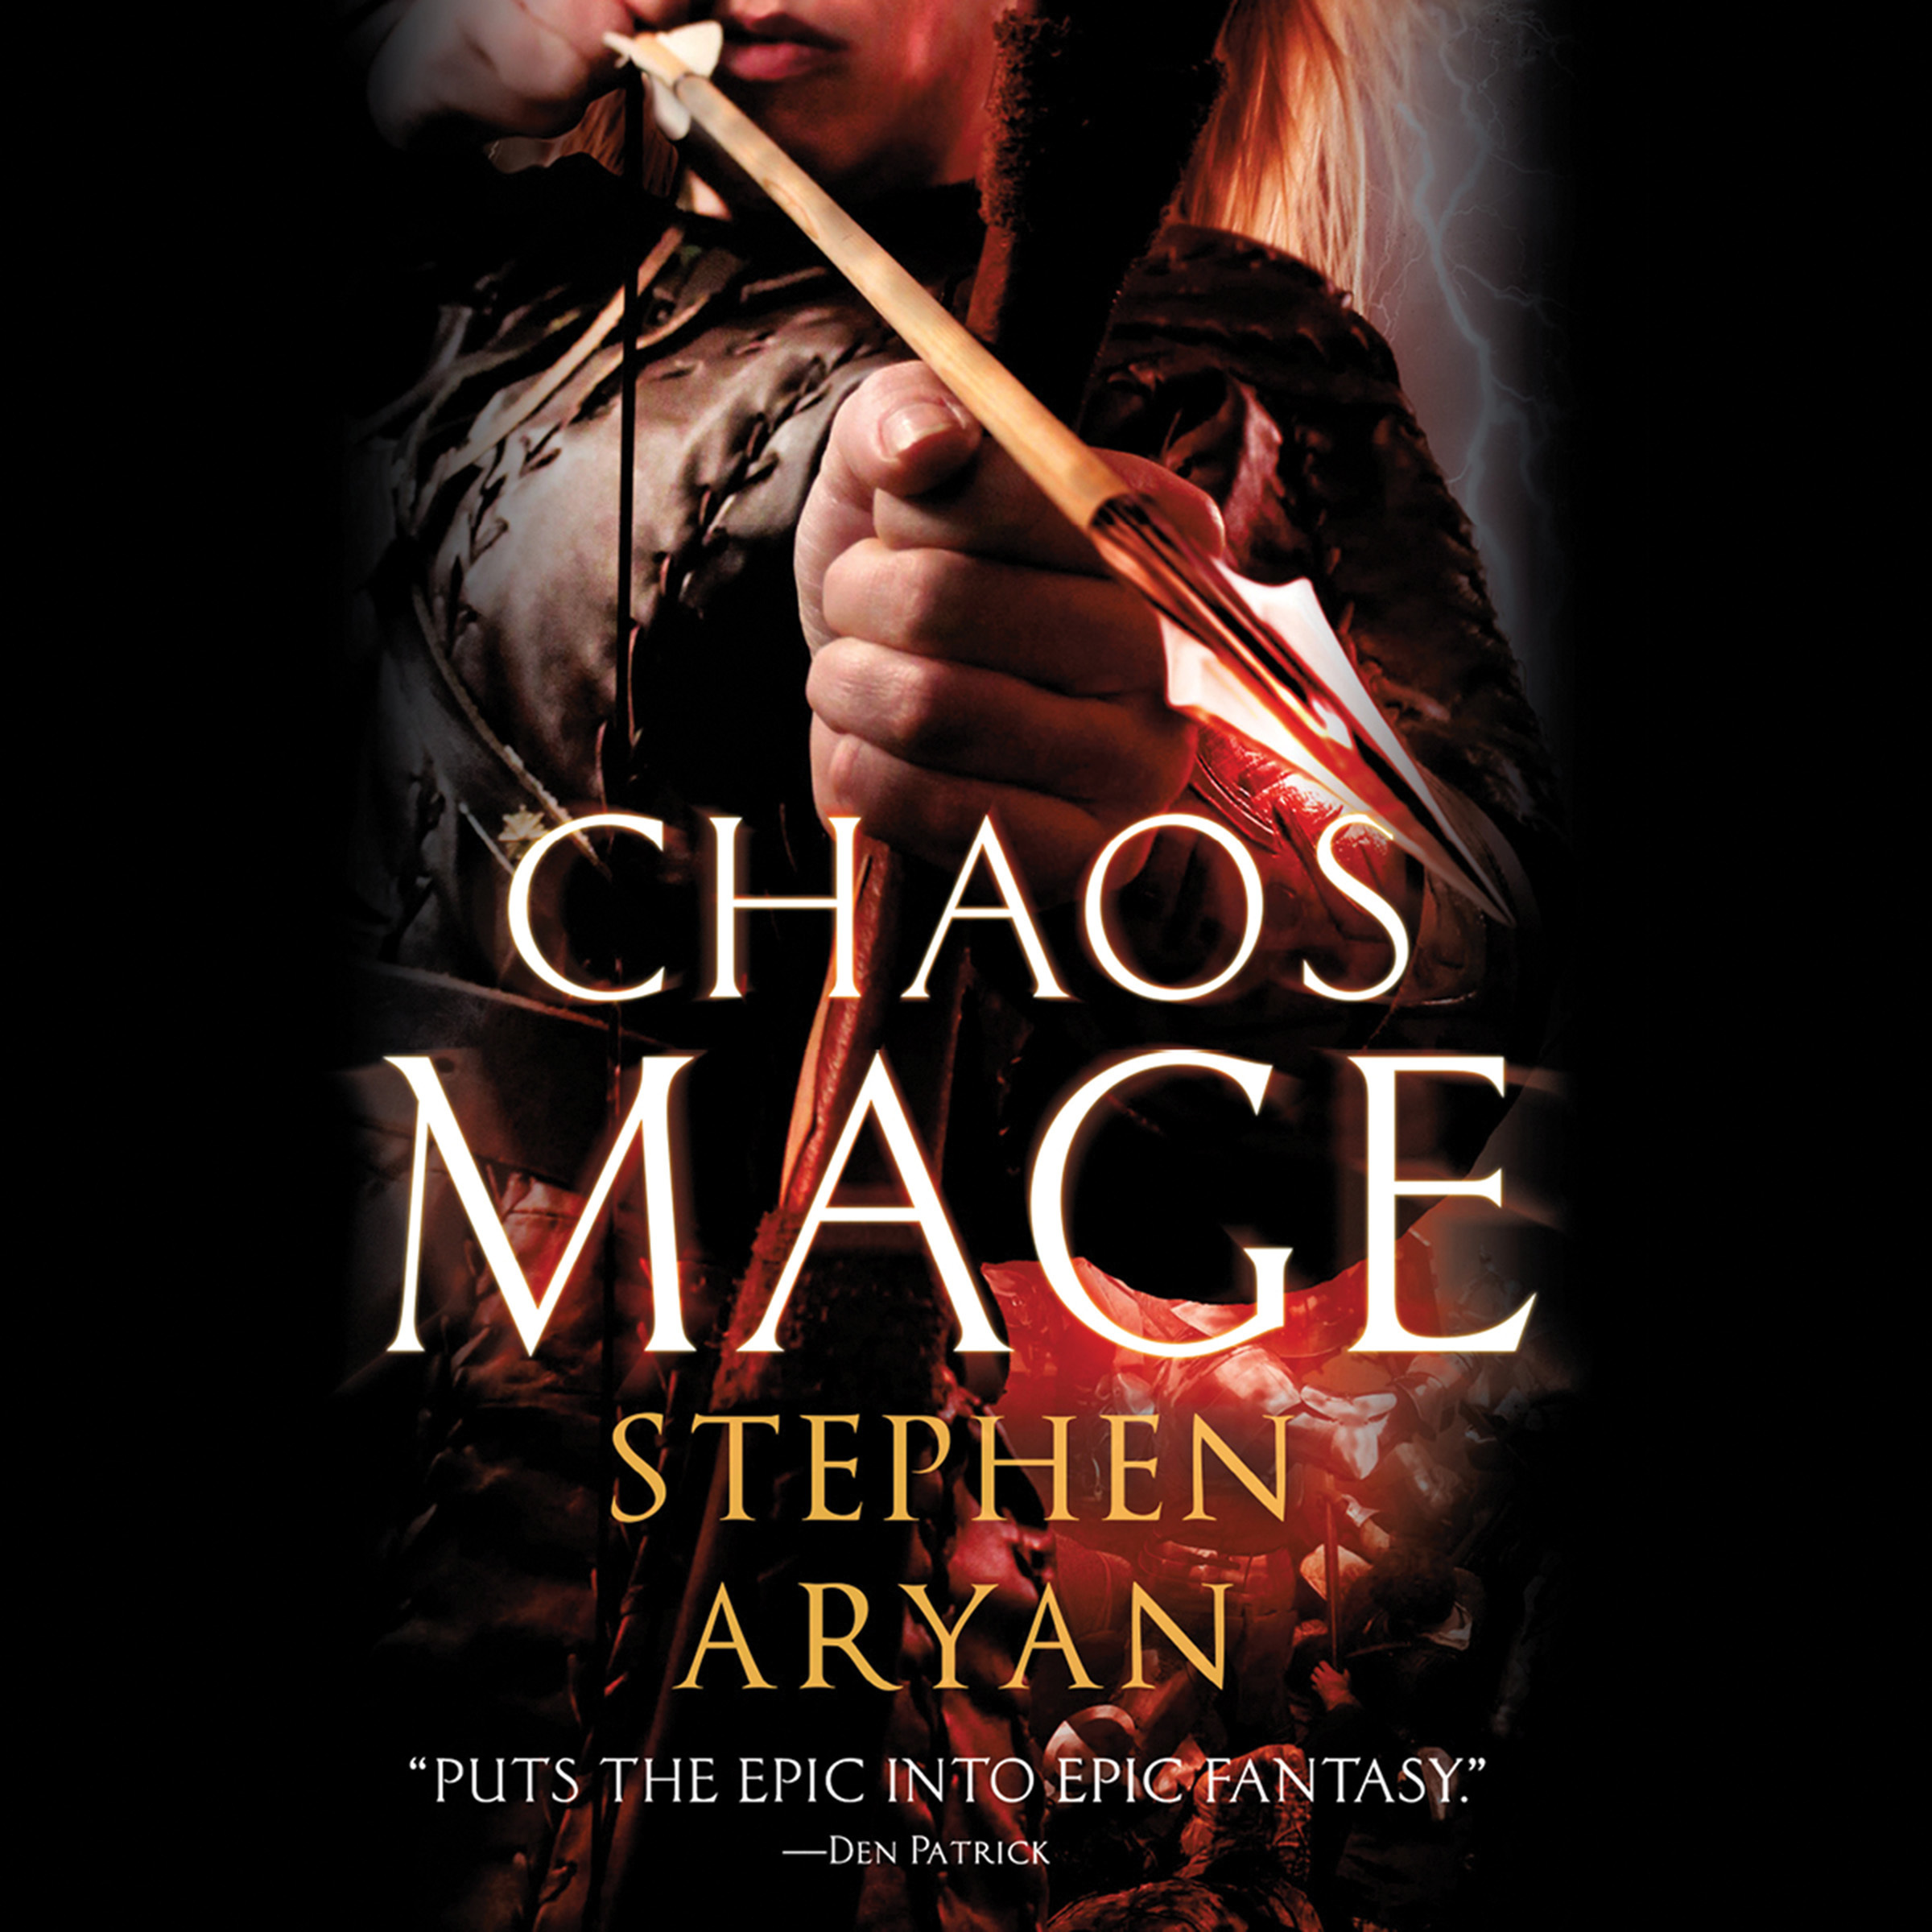 Printable Chaosmage Audiobook Cover Art